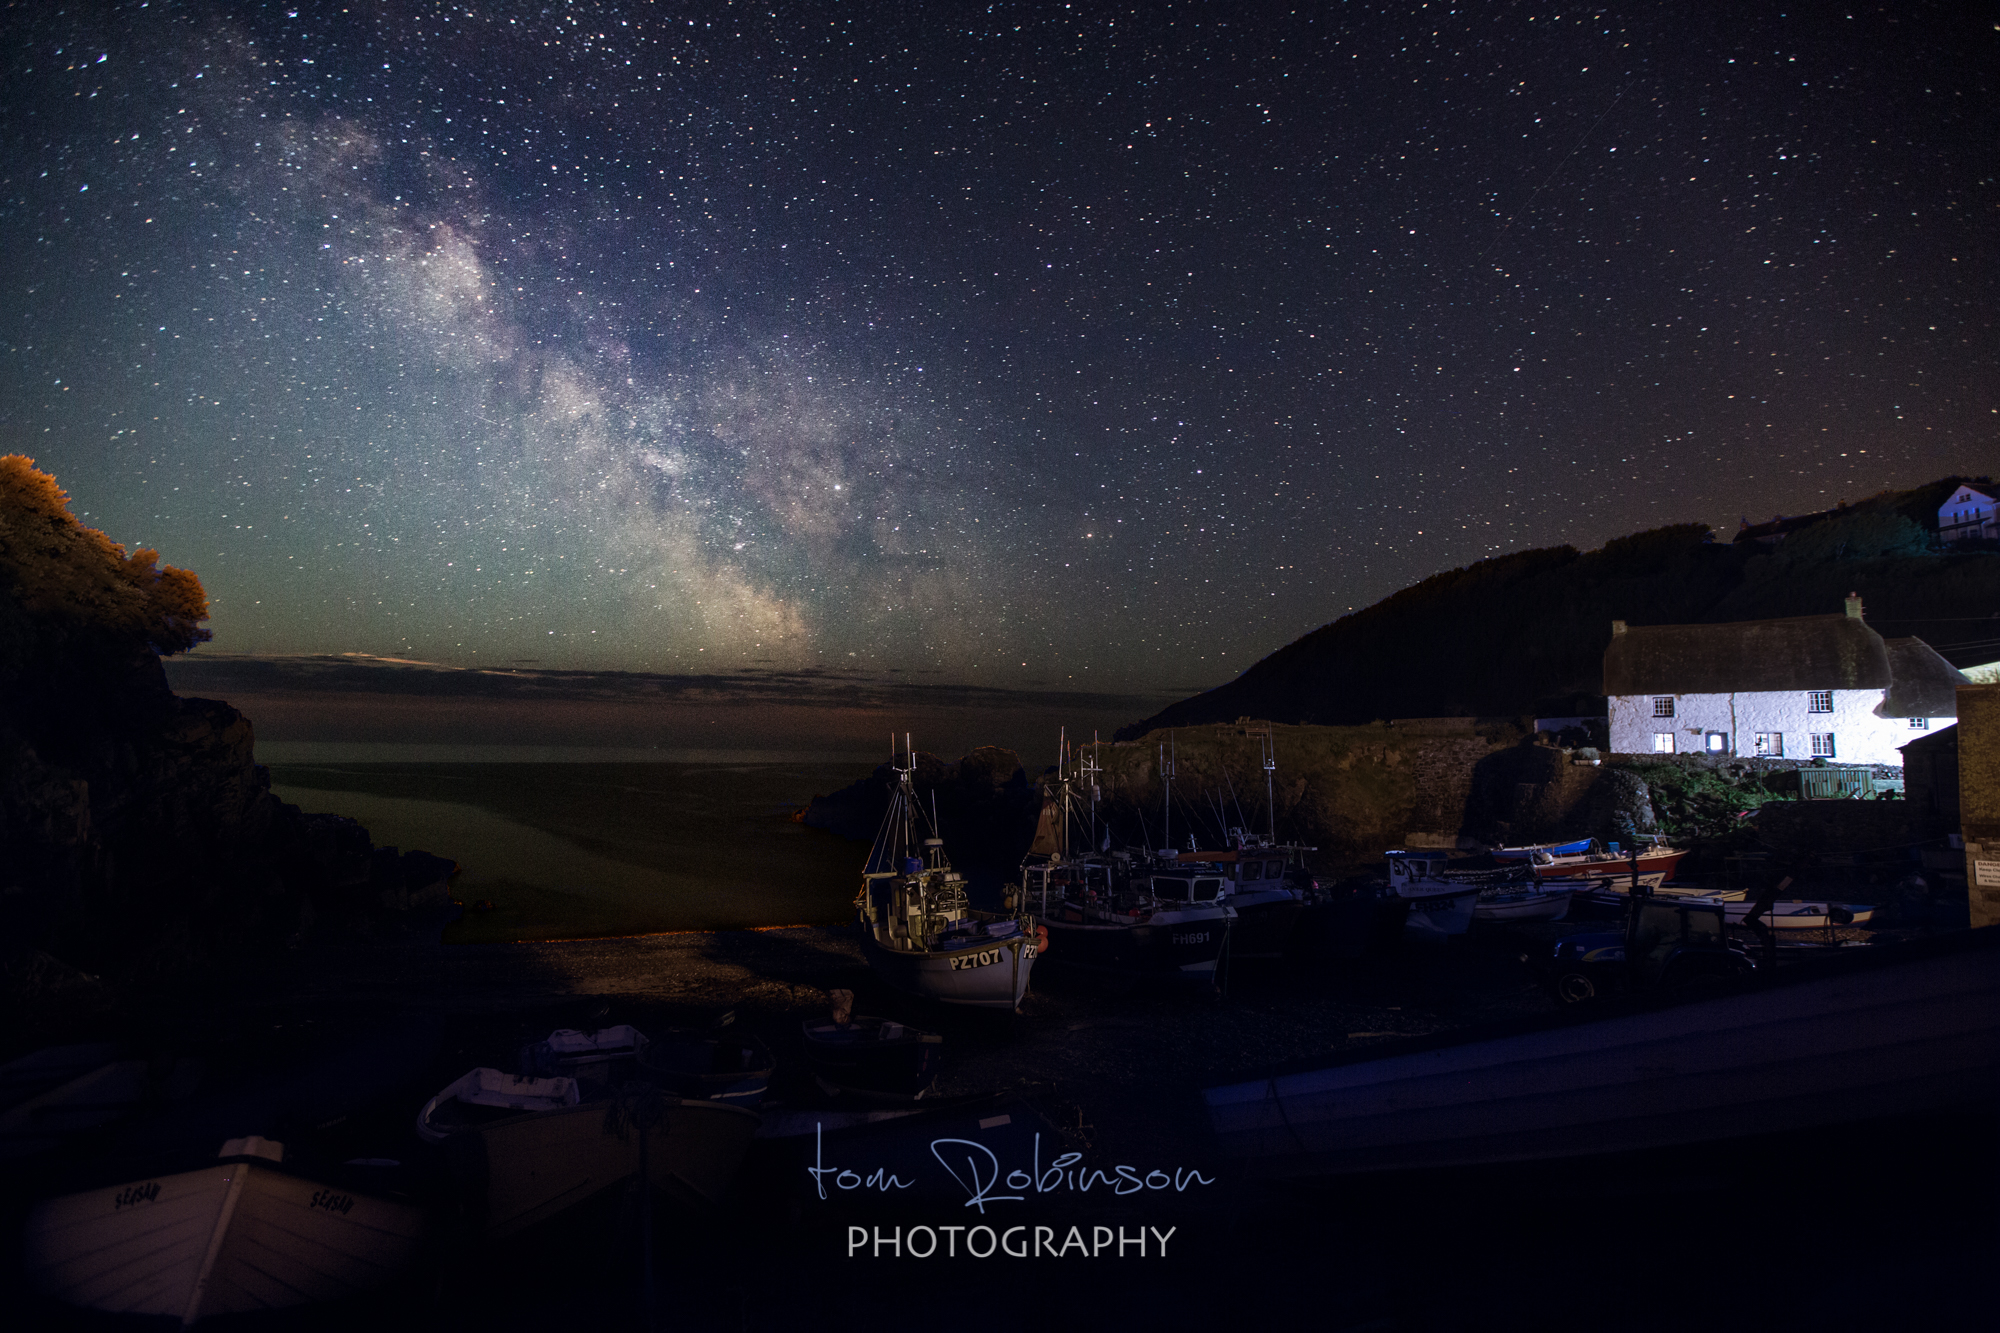 Cadgwith cove by night from the Cornwall by night collection by Tom Robinson Photography